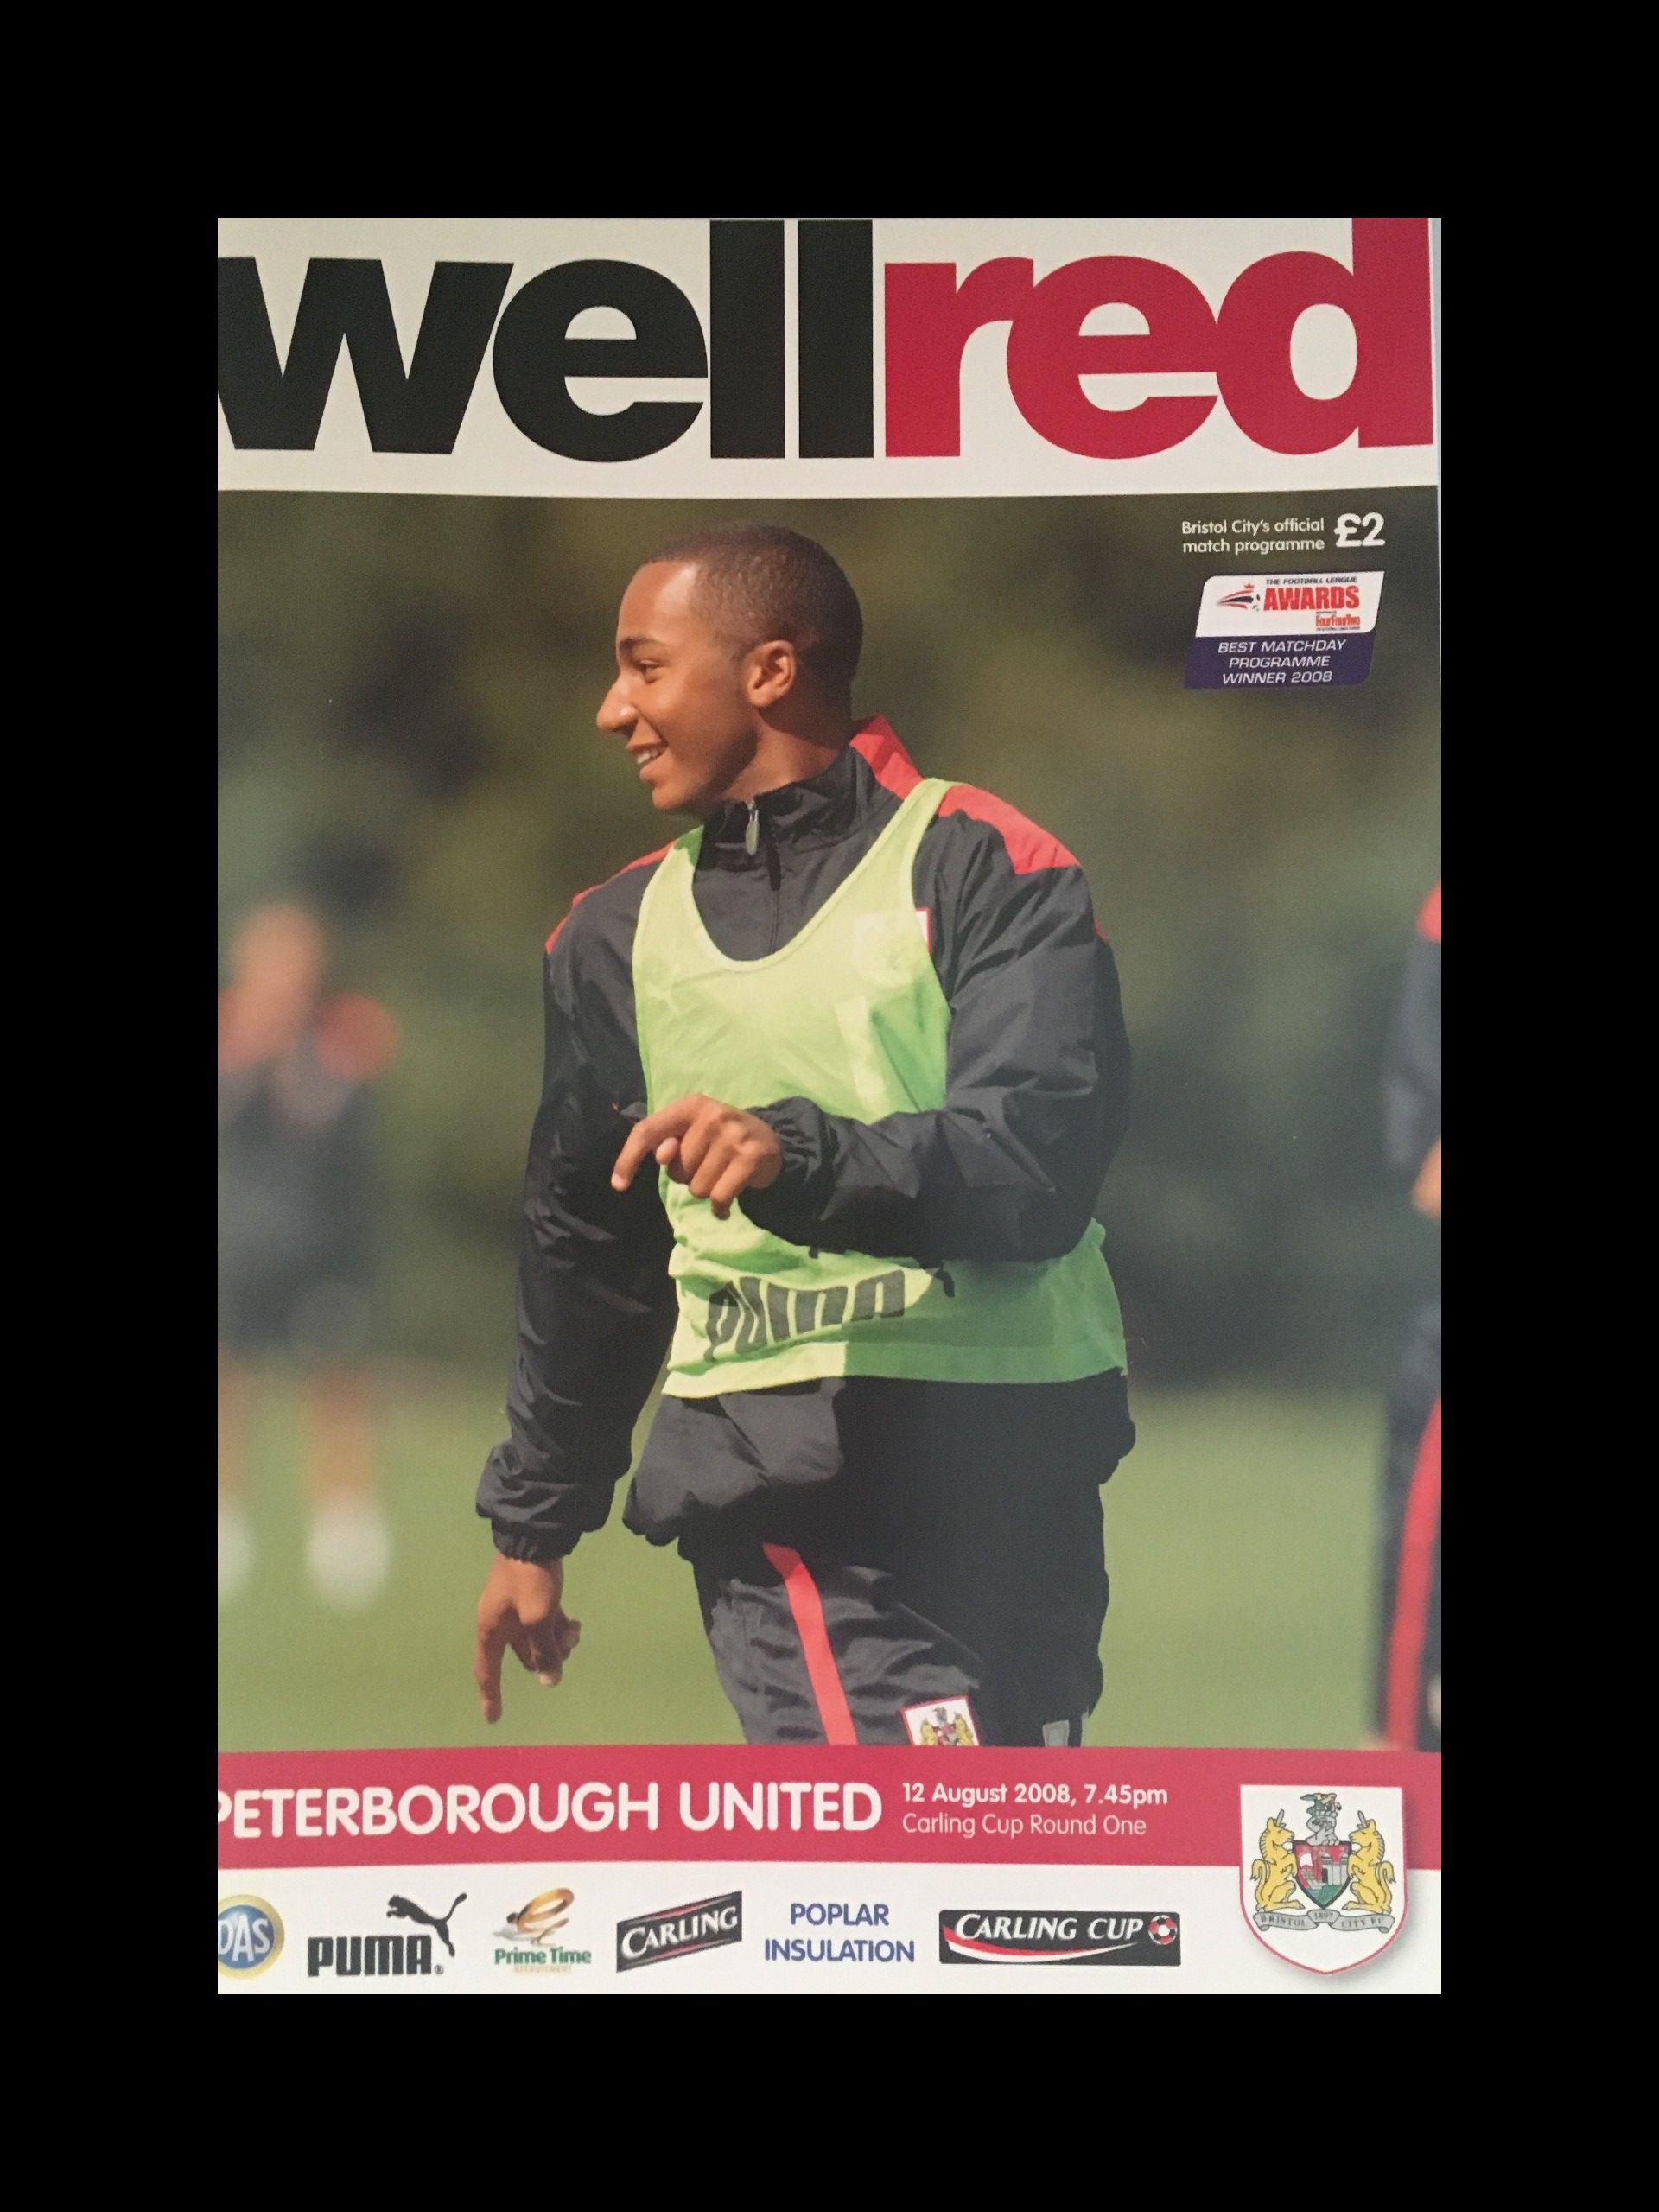 Bristol City v Peterborough United 12-08-2008 Programme